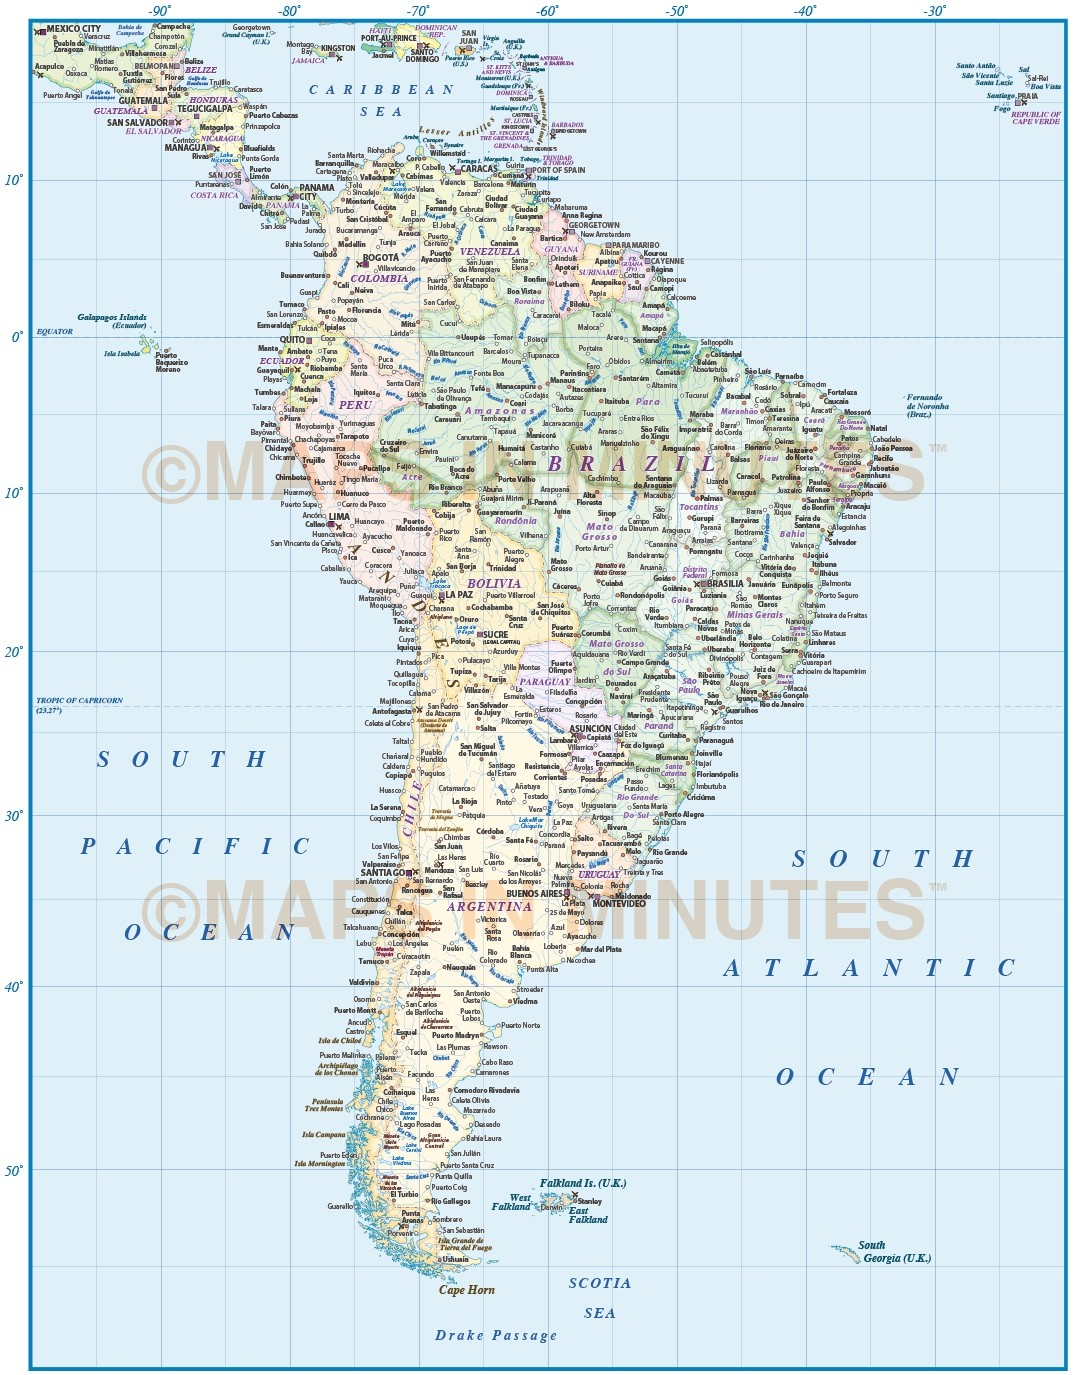 Digital vector South America Countries Political map with ... on were is the equator, globe with equator, north and south equator, map of america with equator, south american map, earth with equator, south us map, south america homes, costa rica map and equator, map of the world equator, ecuador equator, south american countries with equator, south of america, south america equator countries, south america and its capitals, latin america with equator, south america oceans, map showing equator, earth's equator, brazil with equator,